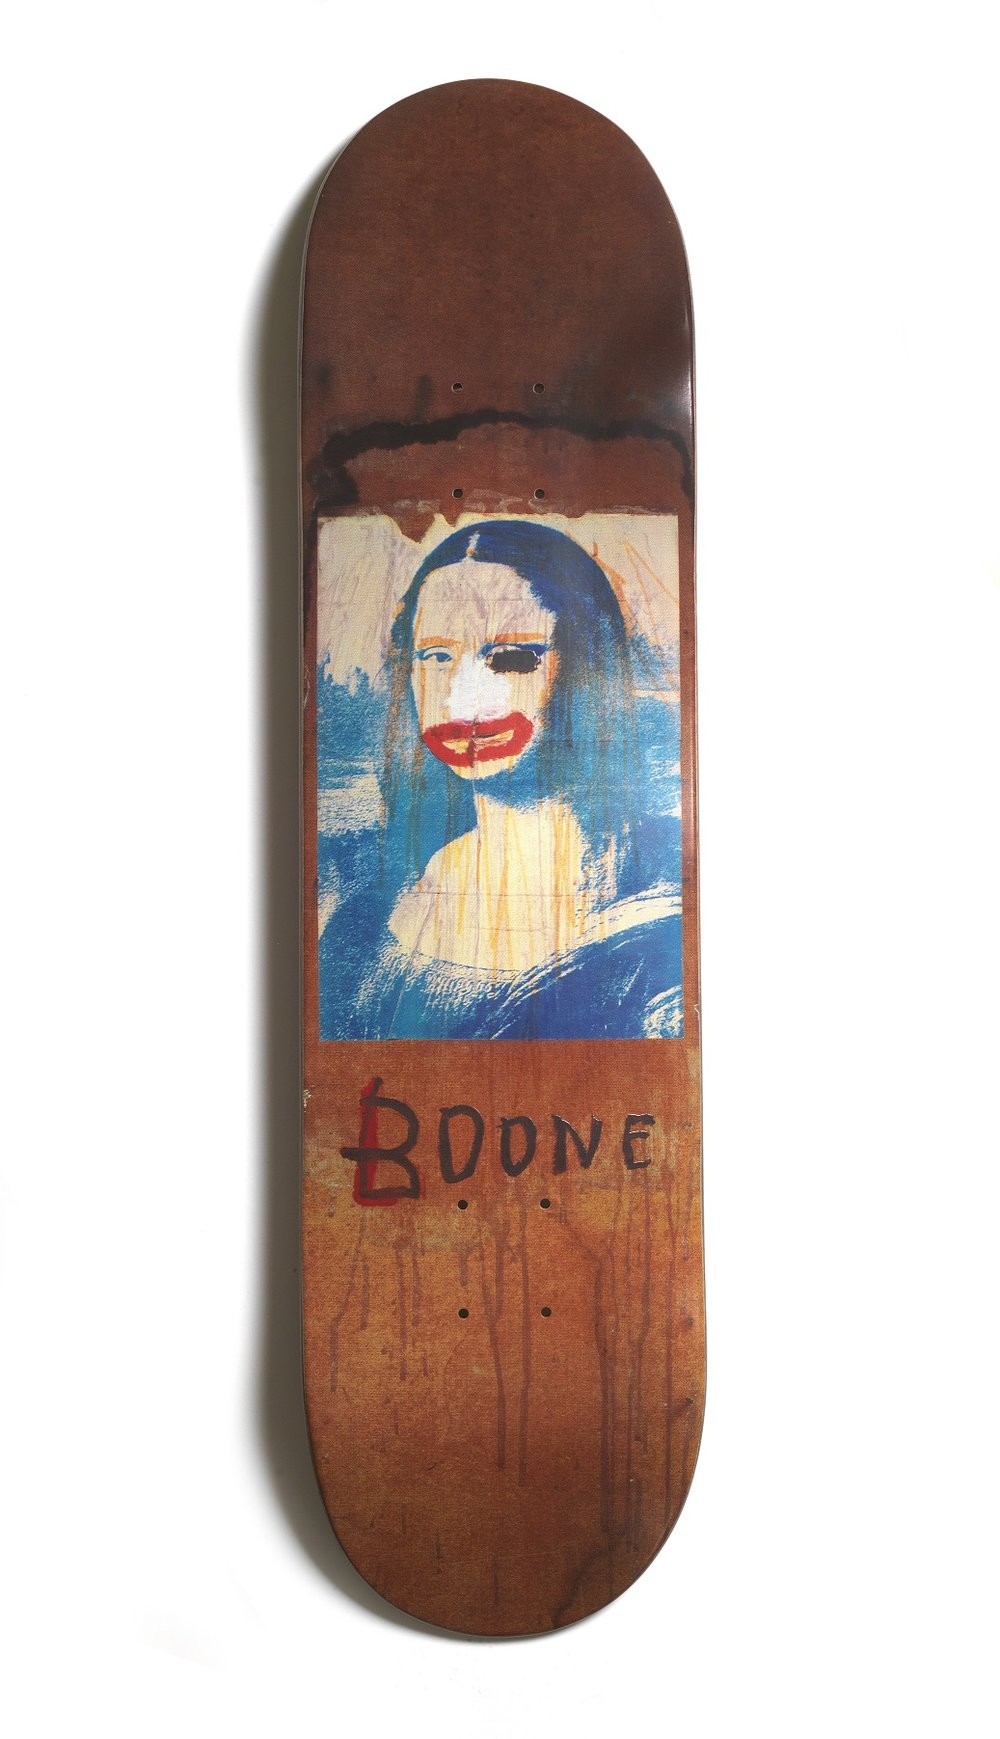 BASQUIAT - BOONE MONA LISA SKATEBOARD - £150 - IMAGE 2 - BROWNS FASHION.jpg